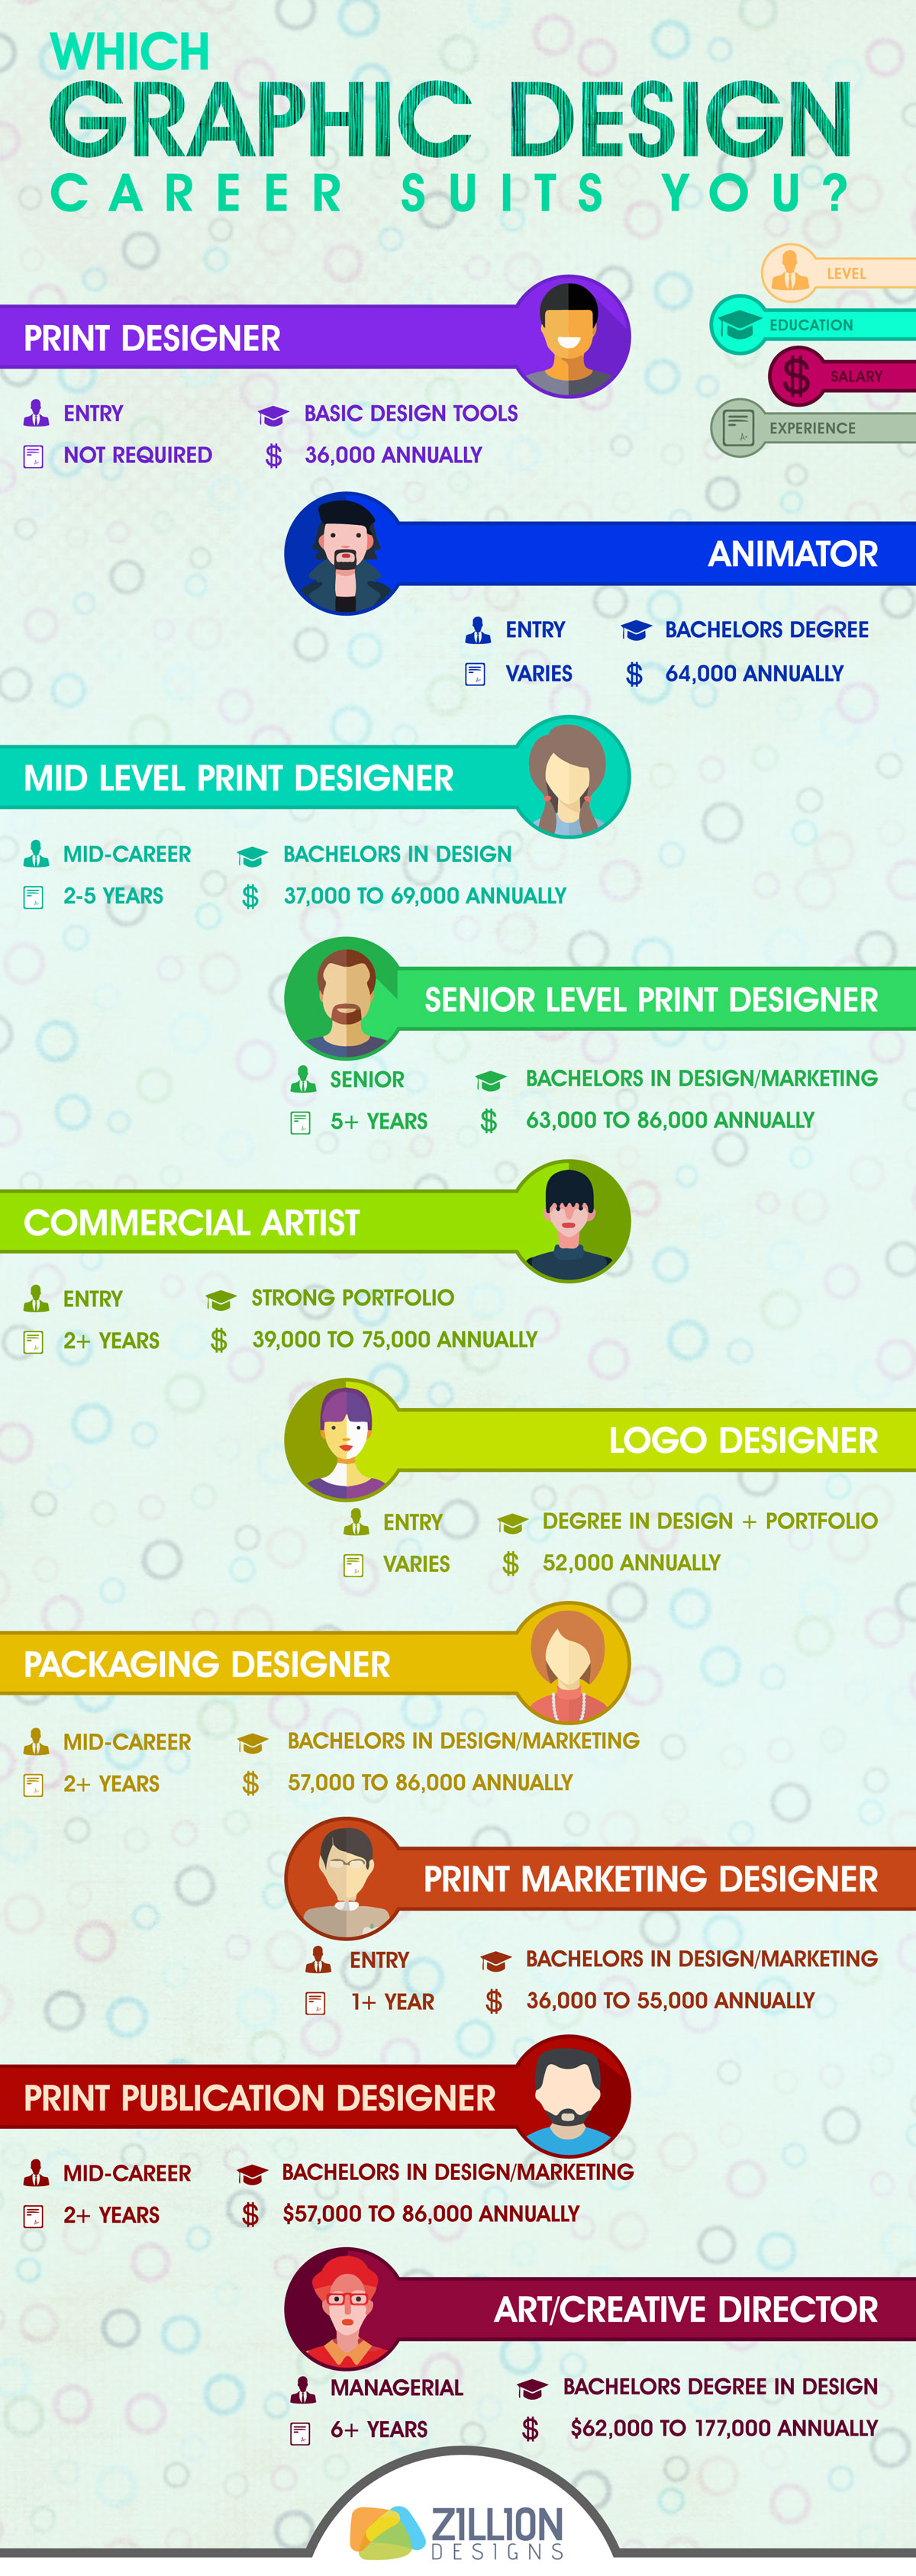 Which Graphic Design Career Suits You?